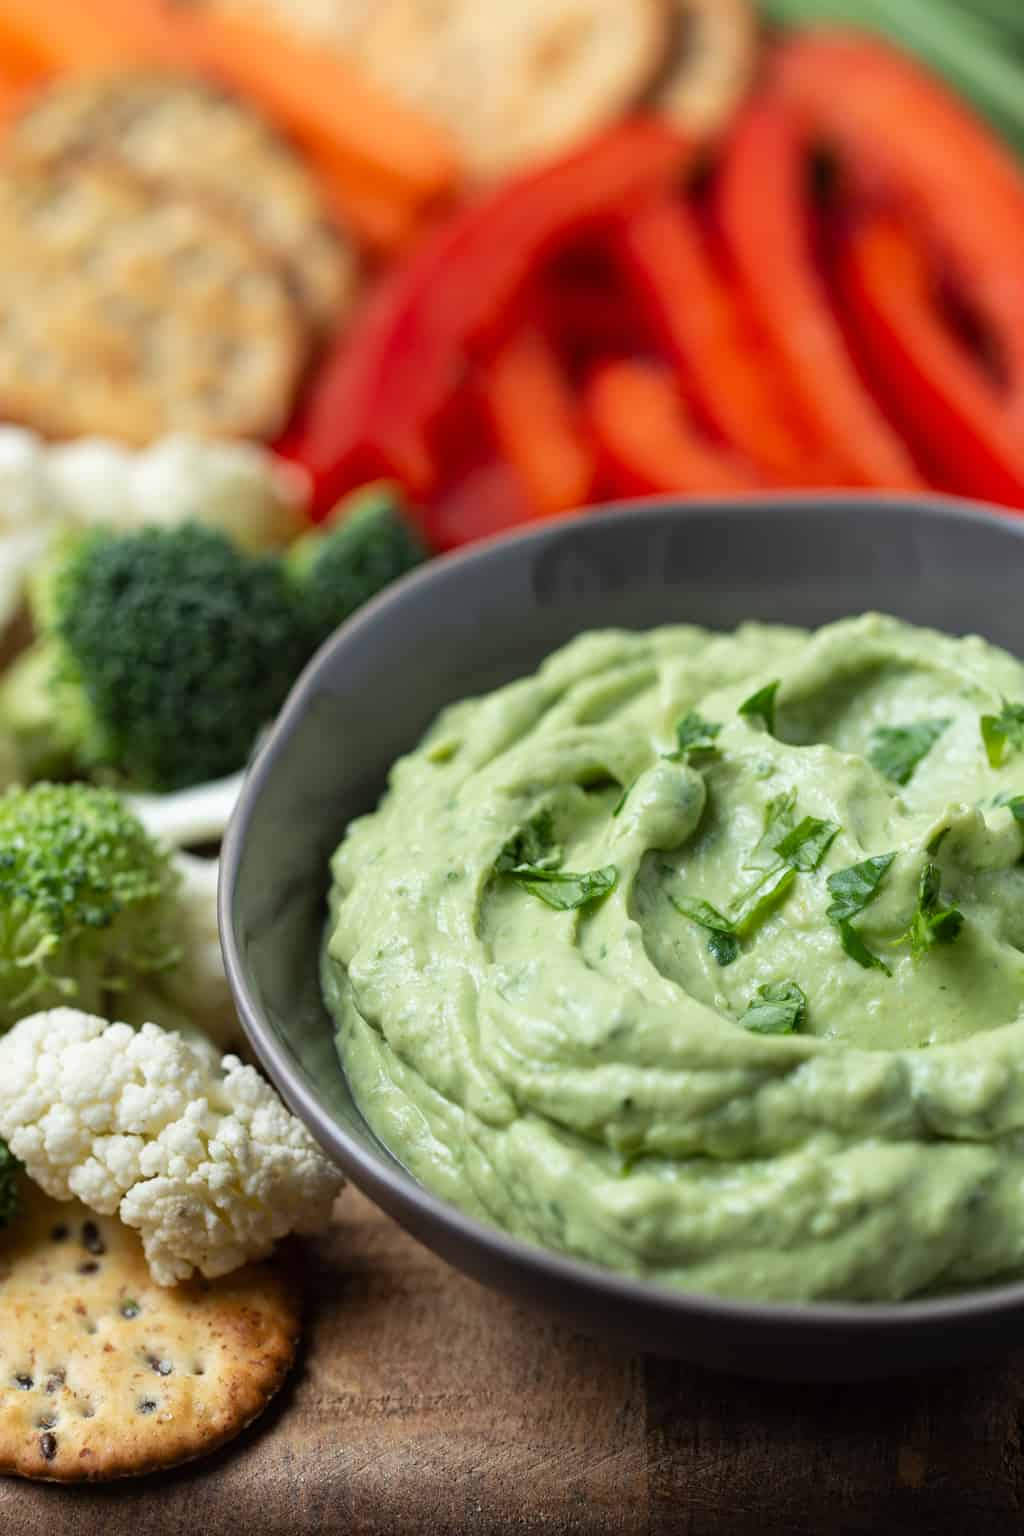 A plate of food with broccoli, cauliflower and peppers, with Avocado Yogurt dip.